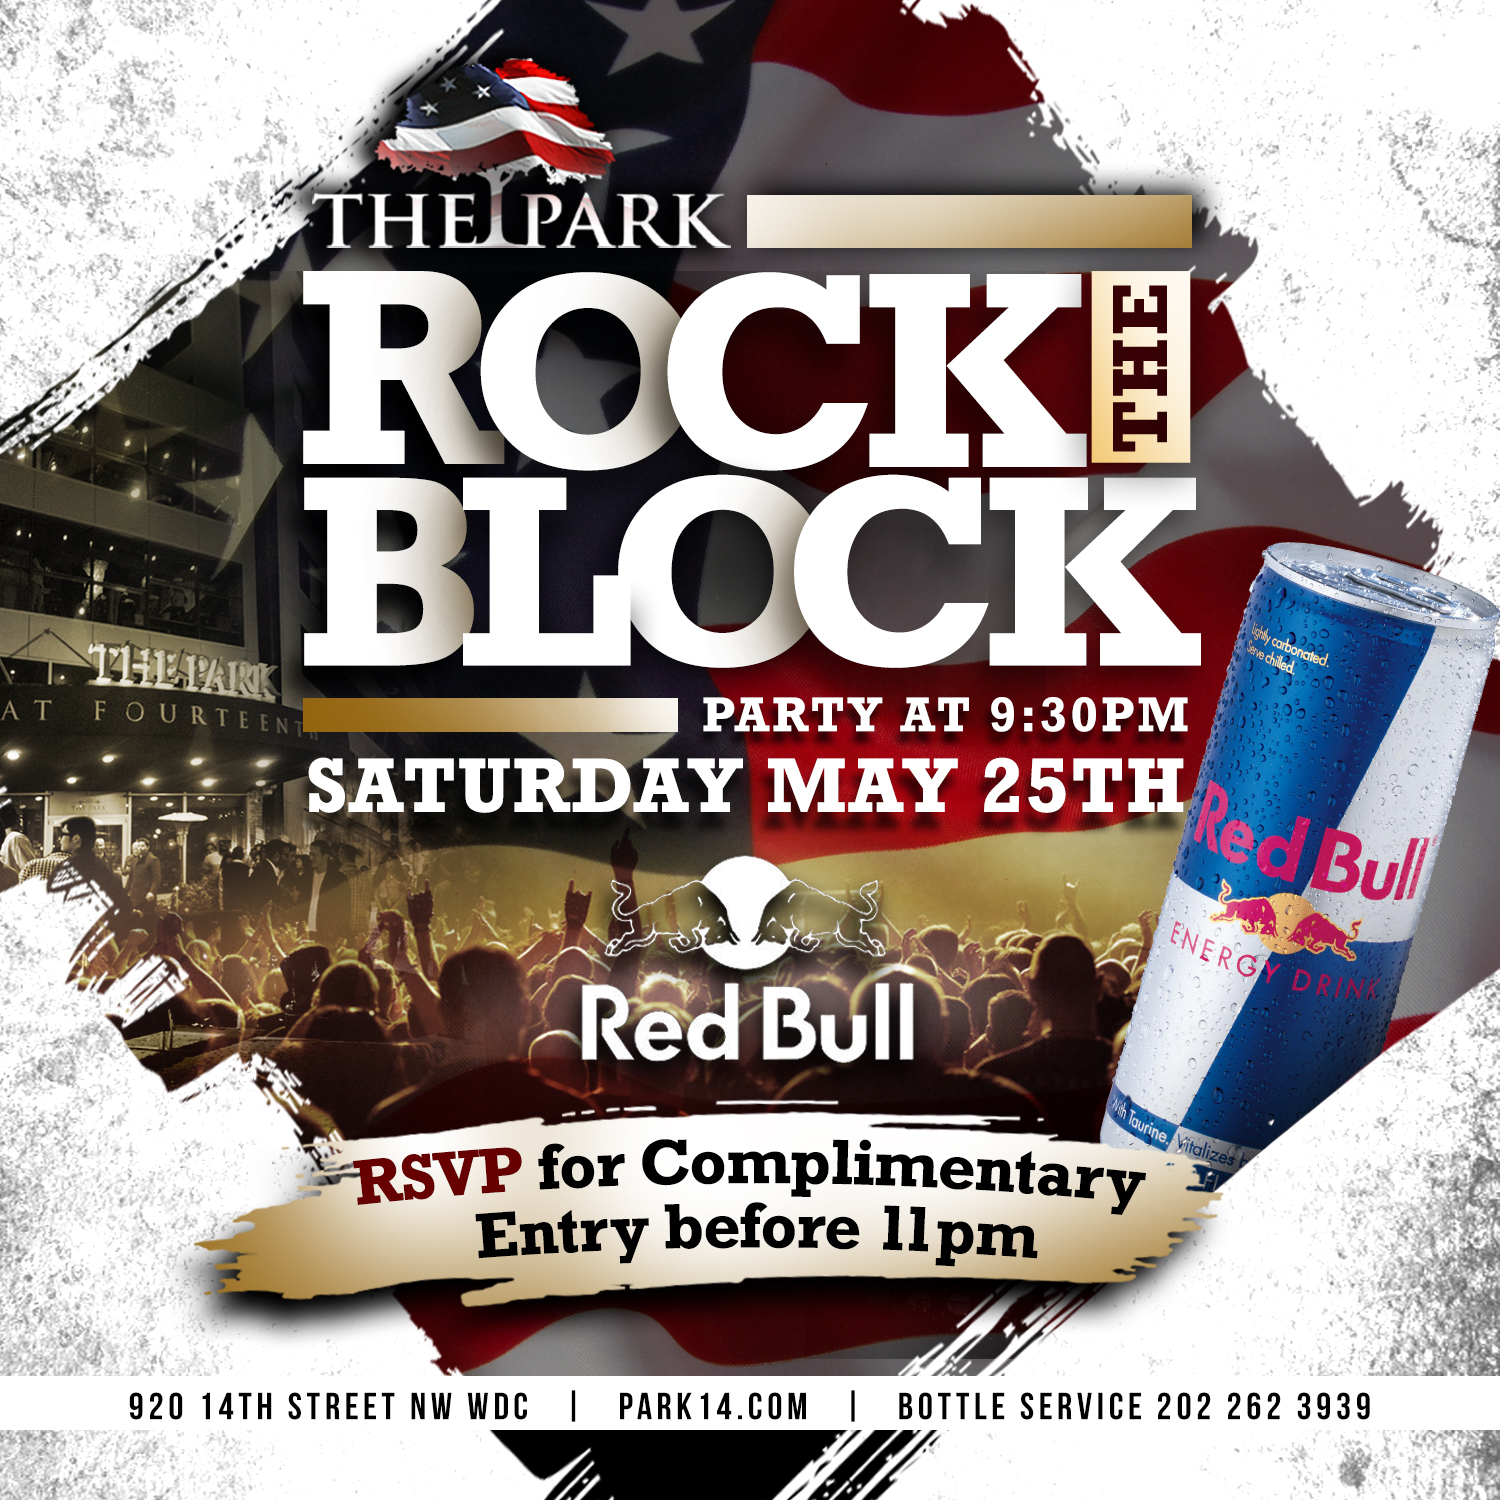 Rock The Block Flyer v3.jpg